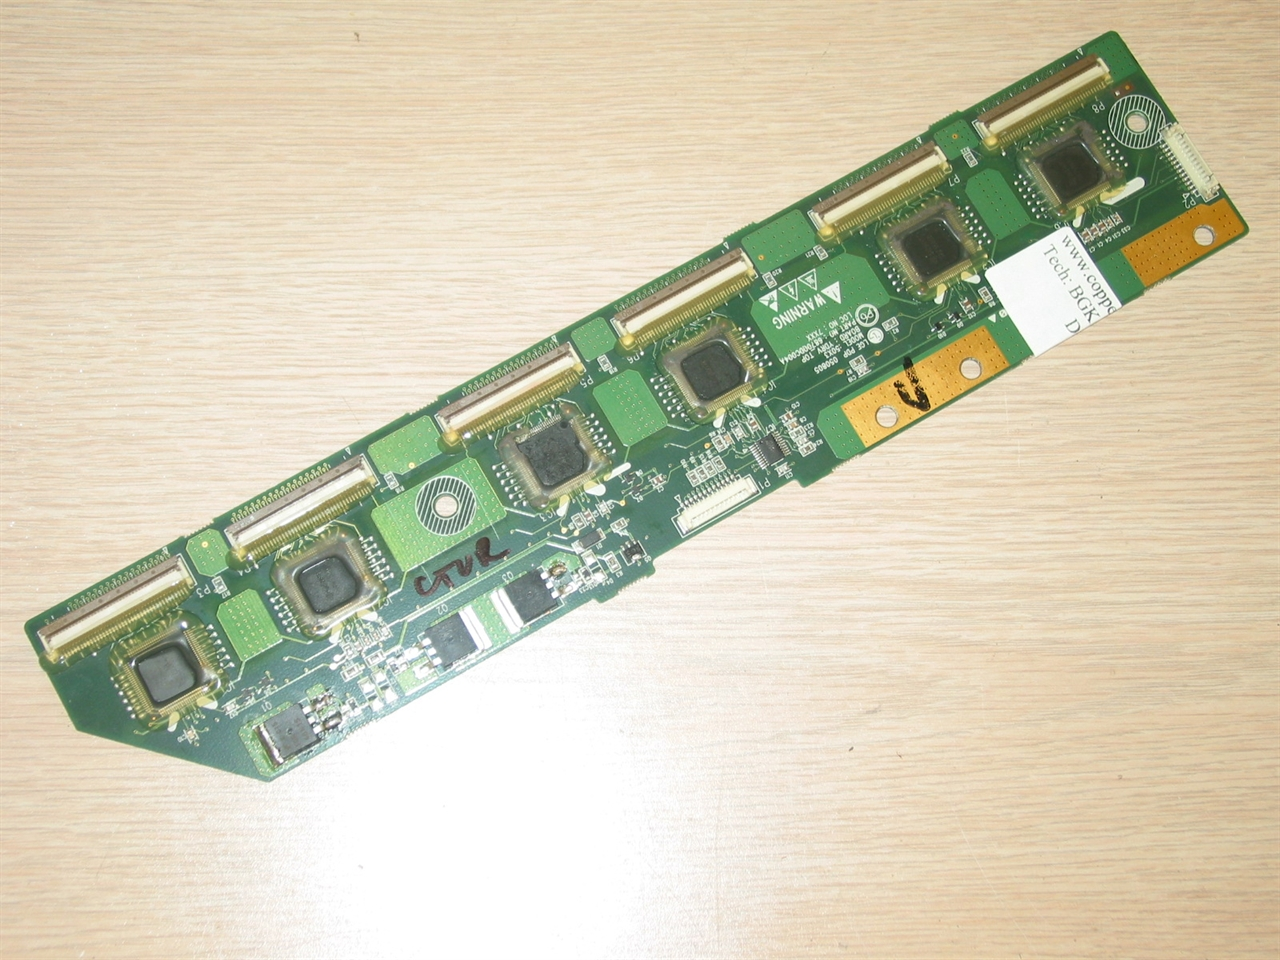 6871qdh088a 6870qdc004a 6870qdc104a Buffer Board Tested Good Old Circuit Boards Designed For New Use In A Repair Shop To Be Sold Picture Of 20 Credit